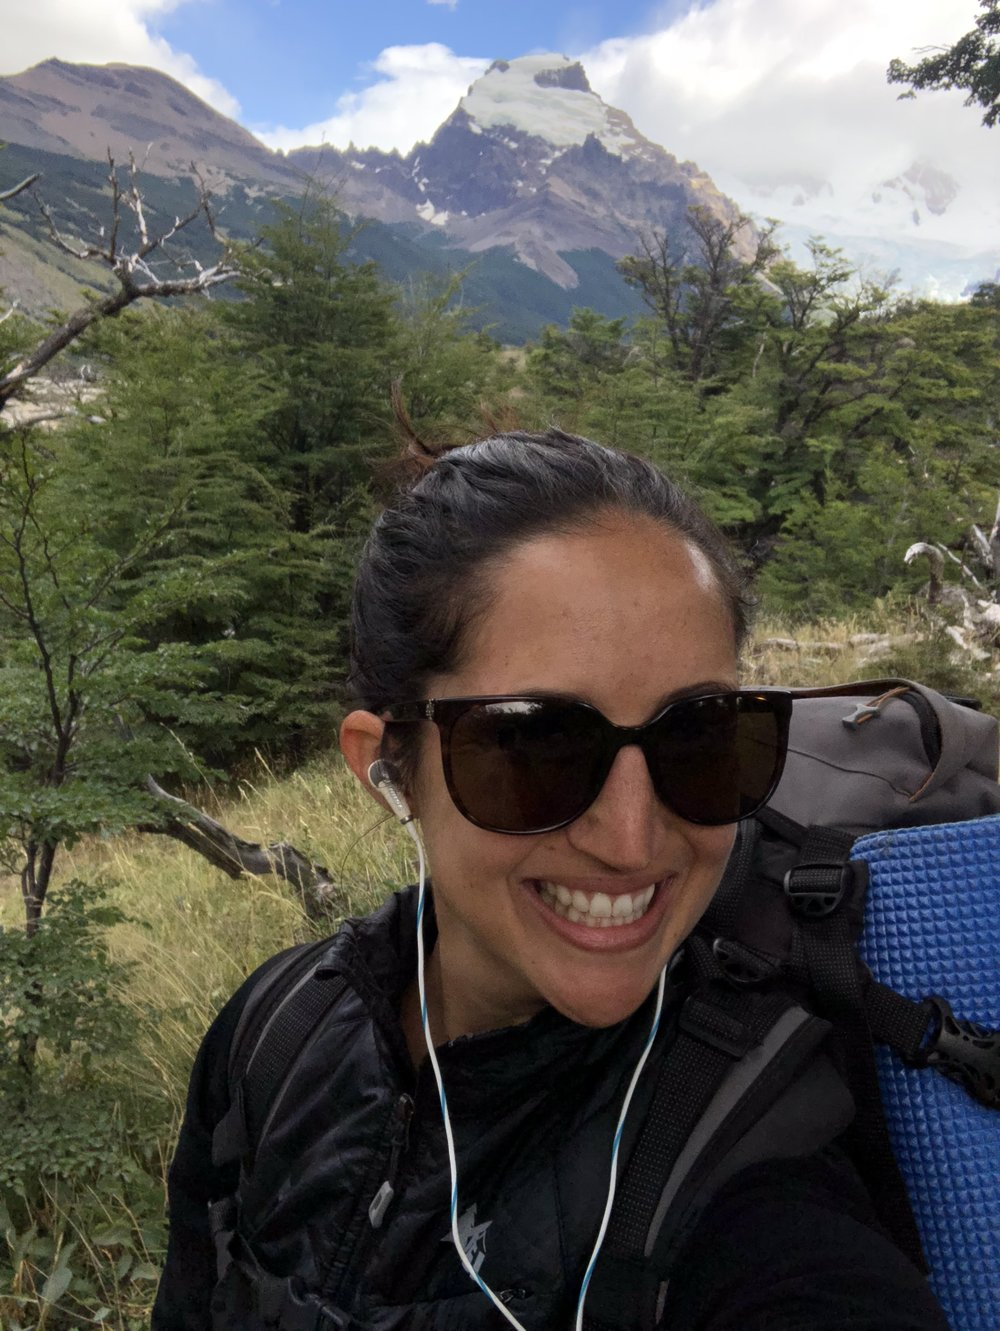 This course is for you if... - You are A WOMAN THAT IS CURIOUS ABOUT TRAVELING SOLOYou want GUIDANCE and support as you plan your tripYou want tips for how to handle being a solo female traveler on the roadYOU WANT TO ENGAGE WITH OTHER BADASS WOMEN LOOKING TO SOLO TRAVELIf you are reading this and feel yourself getting super excited,then this program is definitely for you! Don't let your fears hold you back any longer!